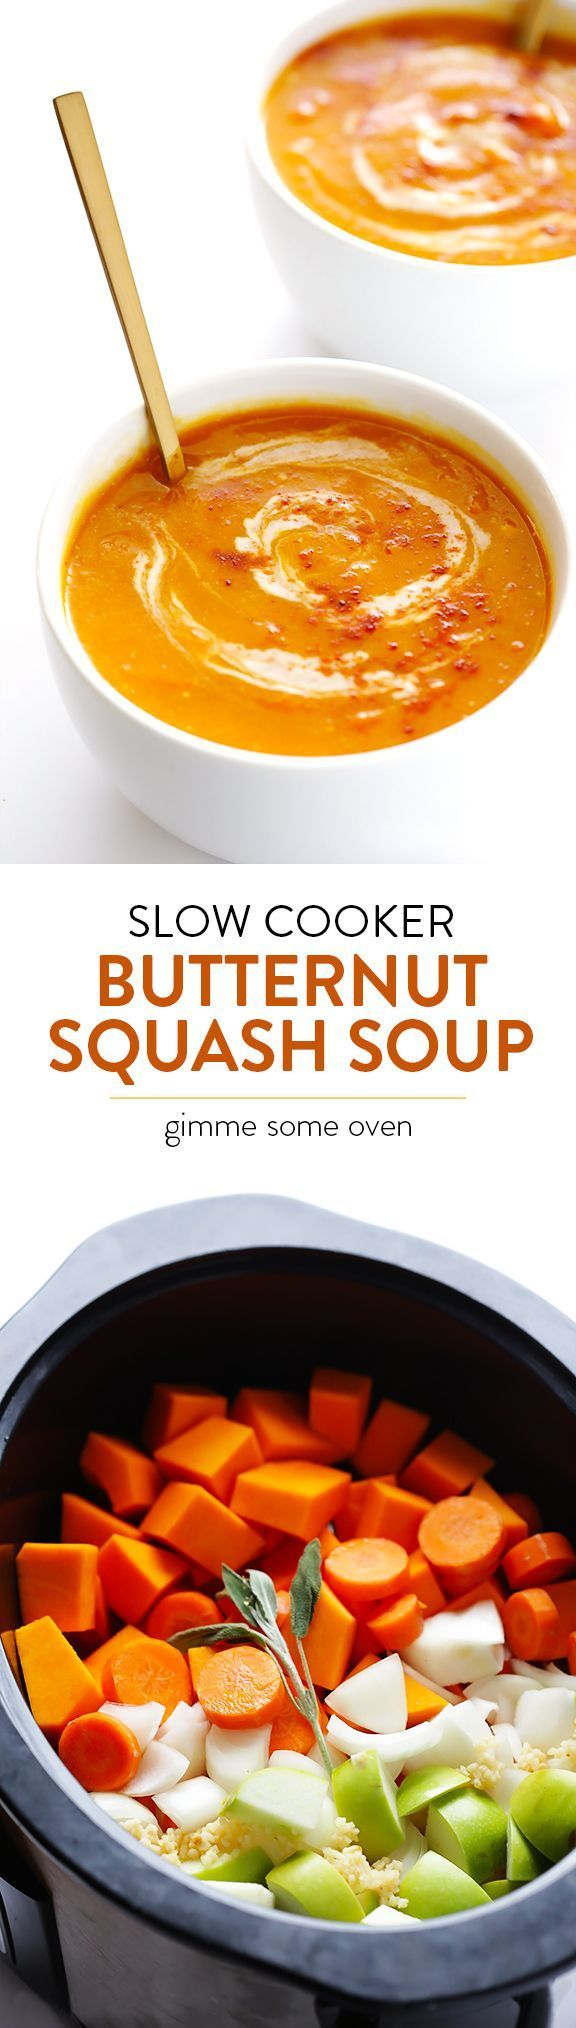 Let your crock pot do all of the work with this easy and super-delicious Slow Cooker Butternut Squash Soup! | gimmesomeoven.com